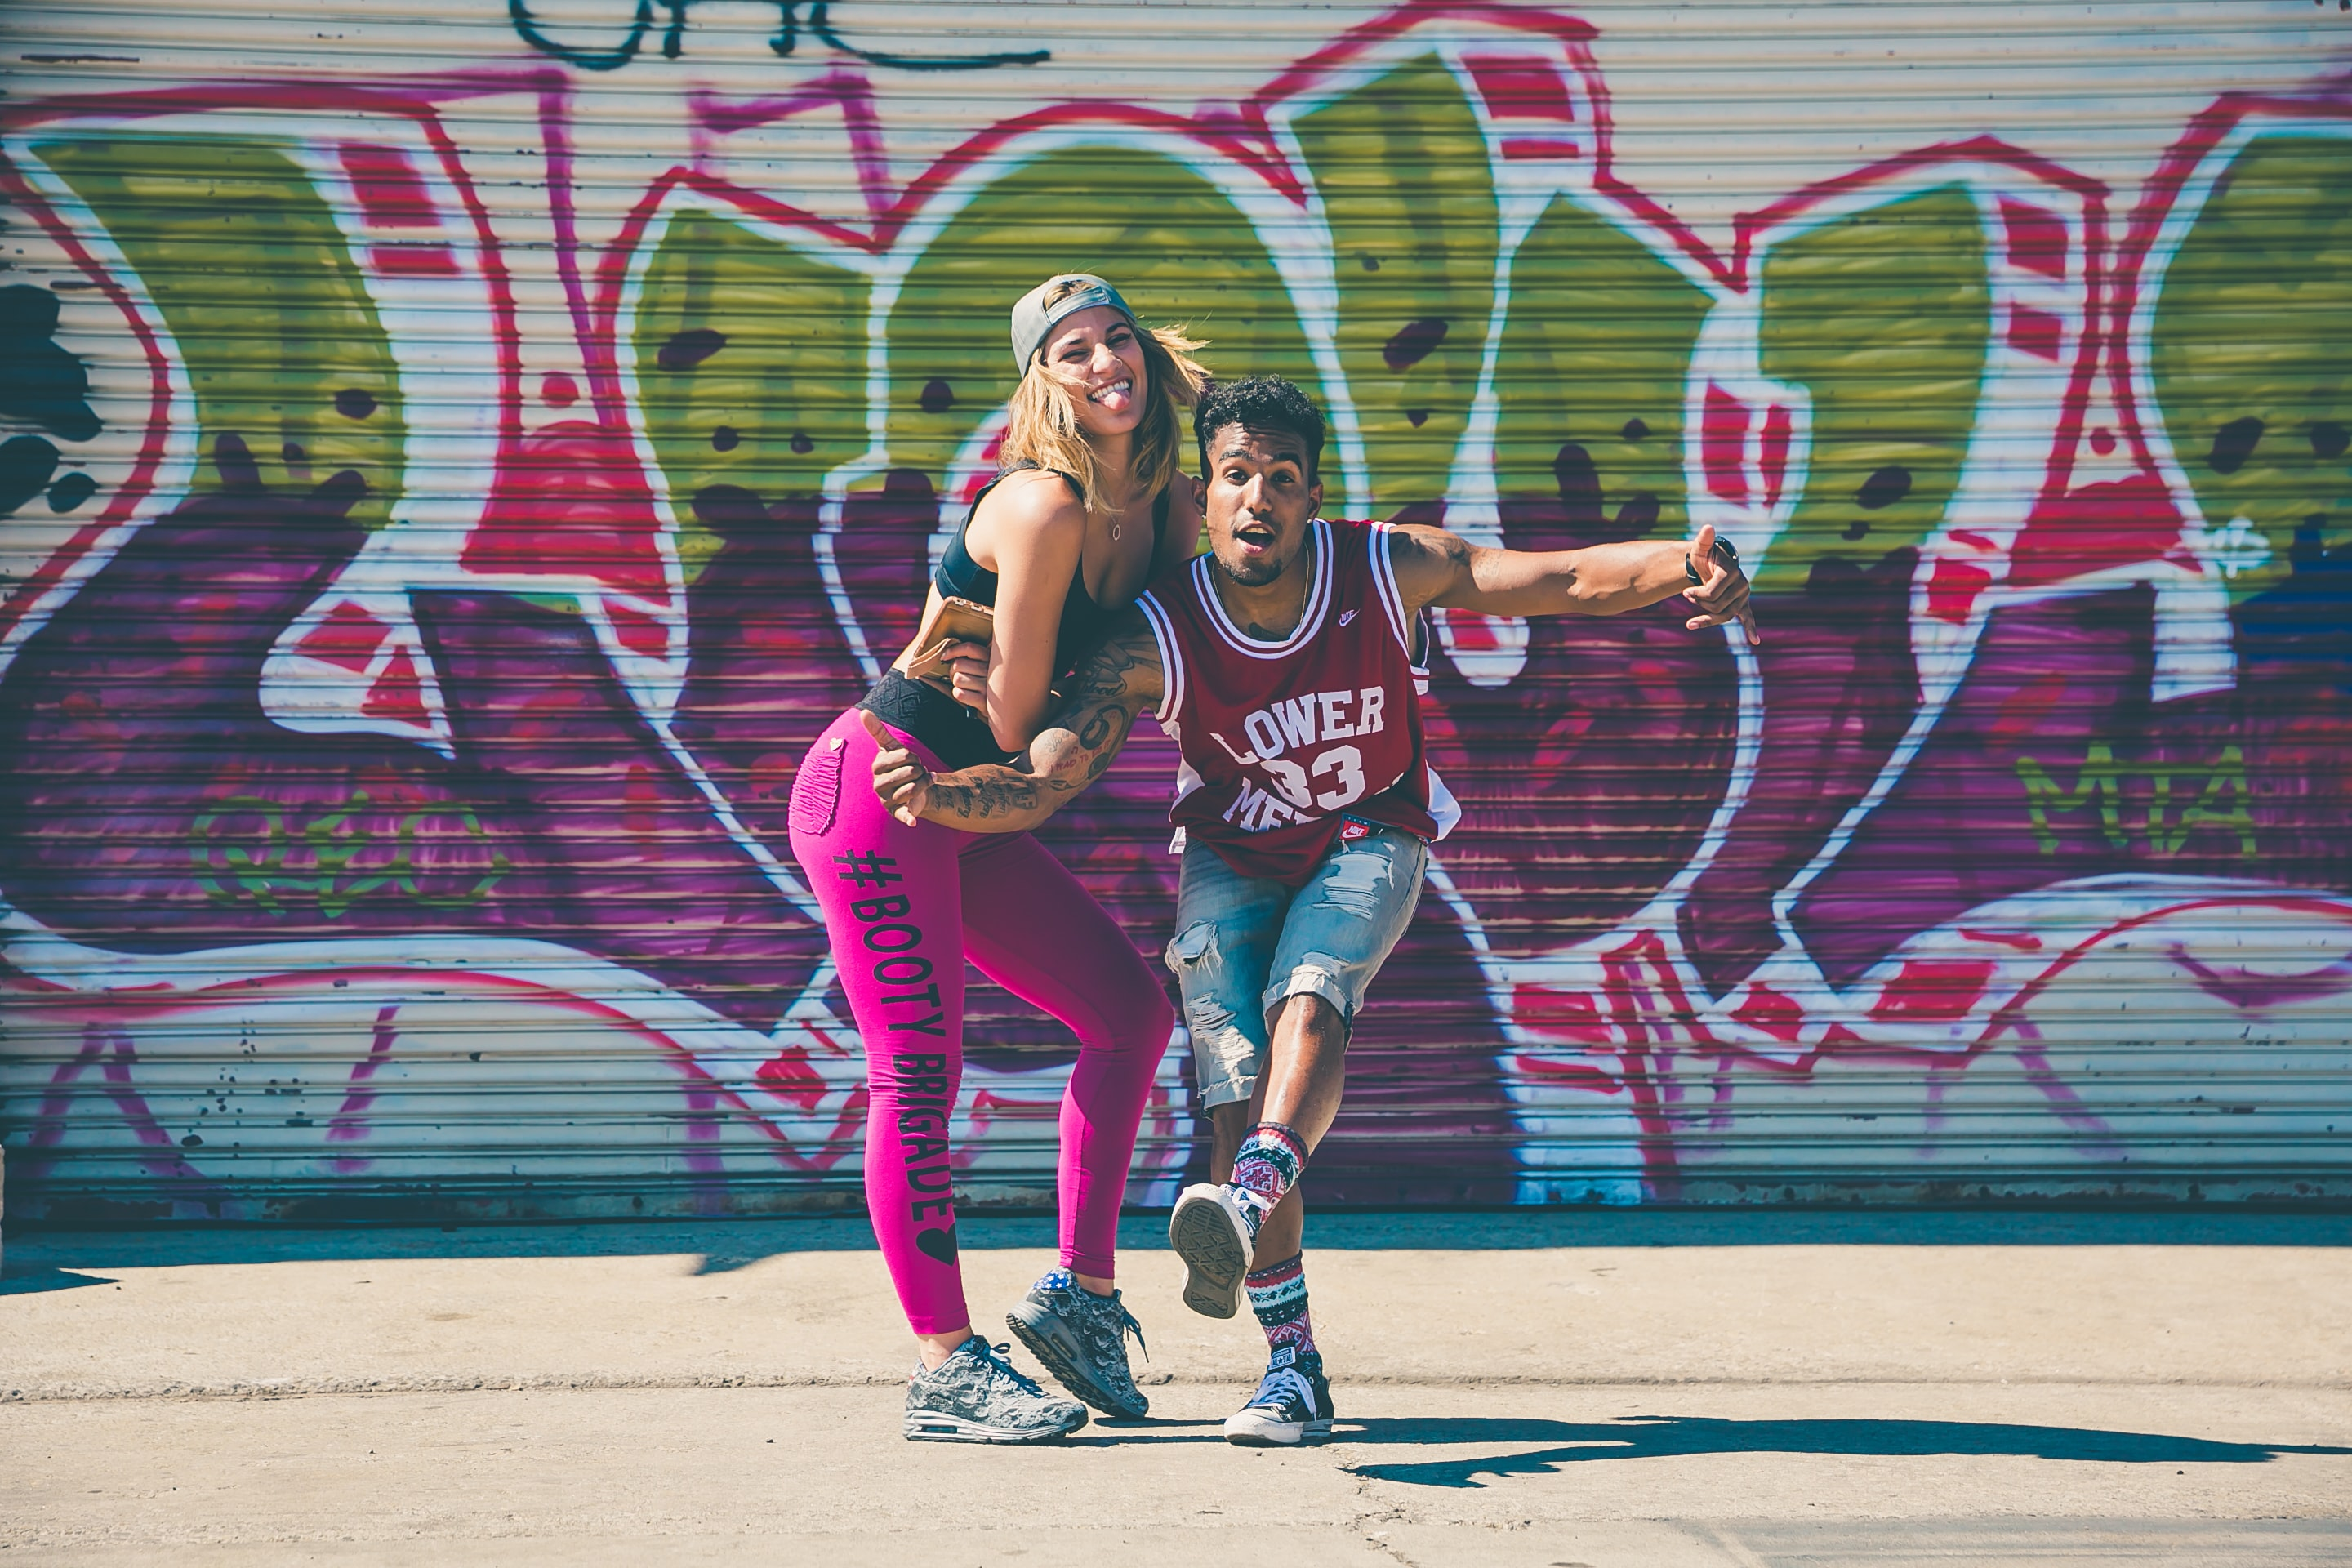 A girl and guy acting goofy and dancing in front of a graffiti wall